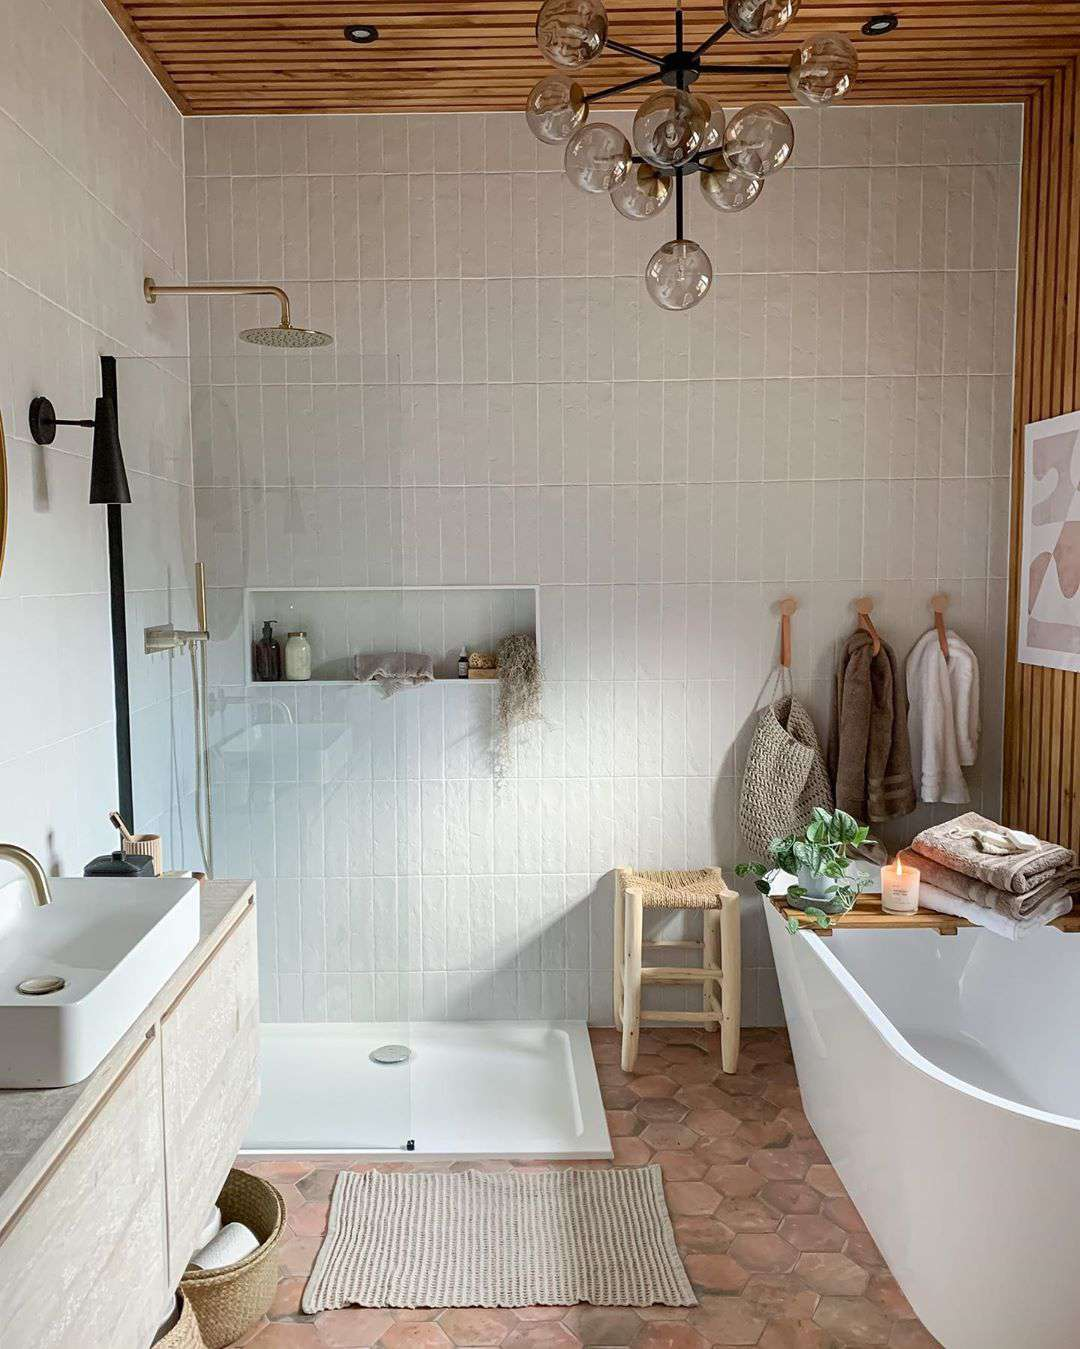 Bathroom with white tiles and clay floor tiles